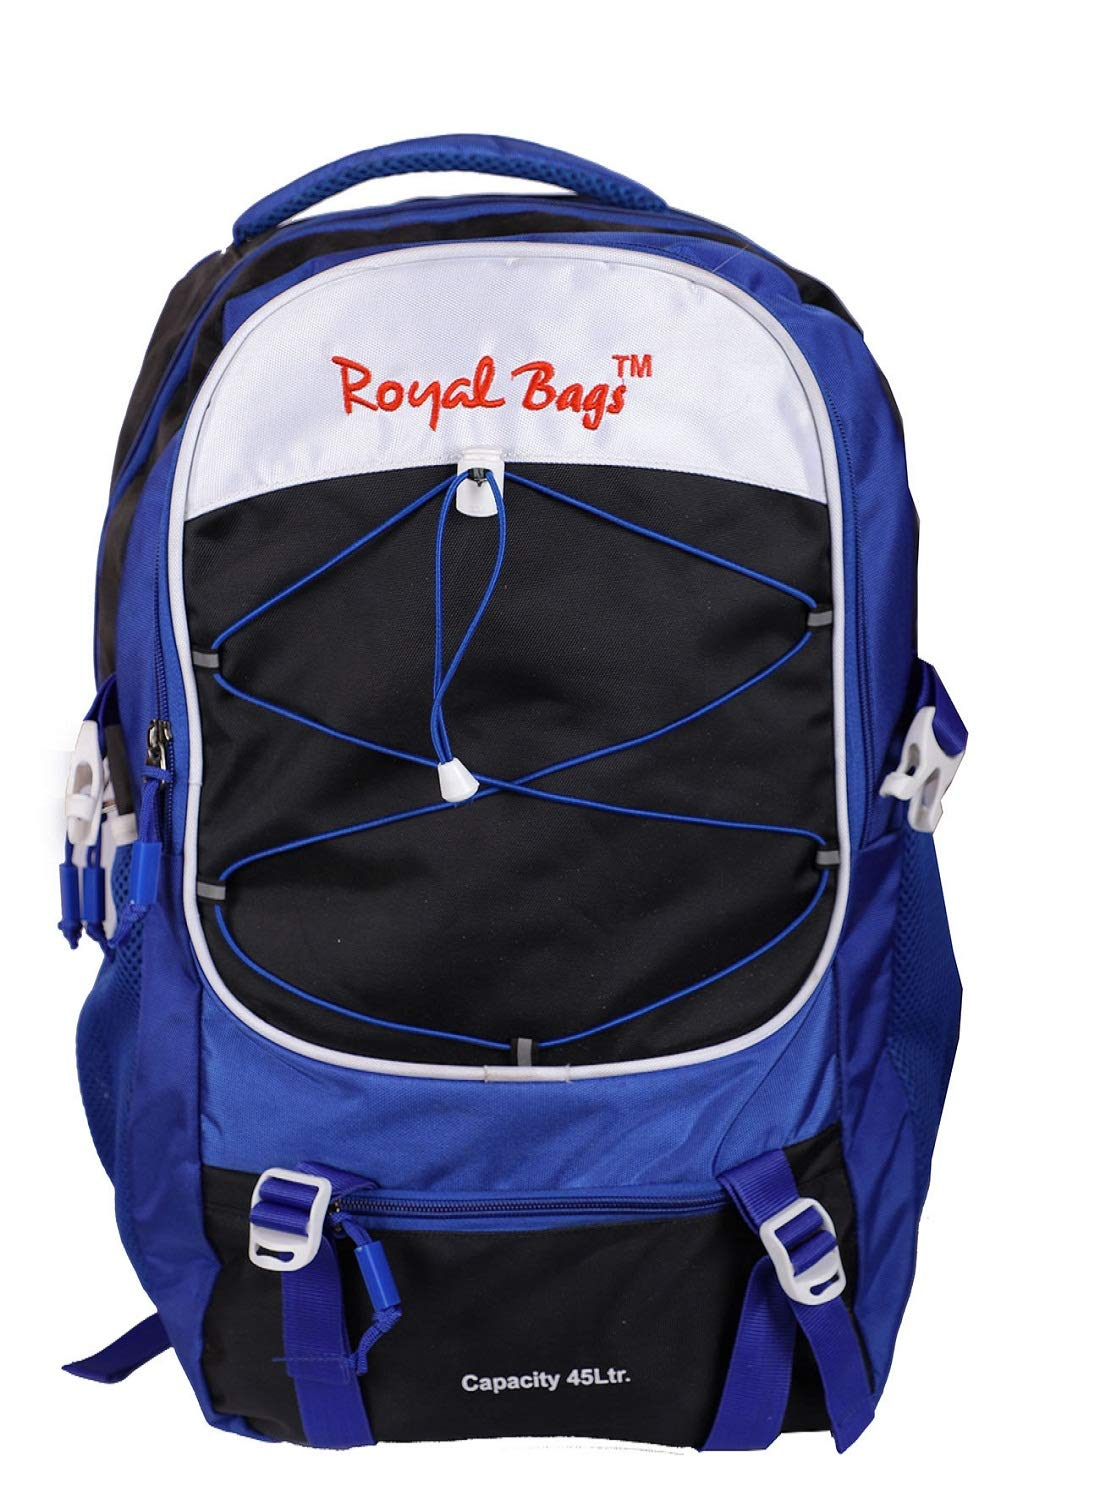 4957923f4ec Royal Bags PU Coated Black Camping Rucksack Bag